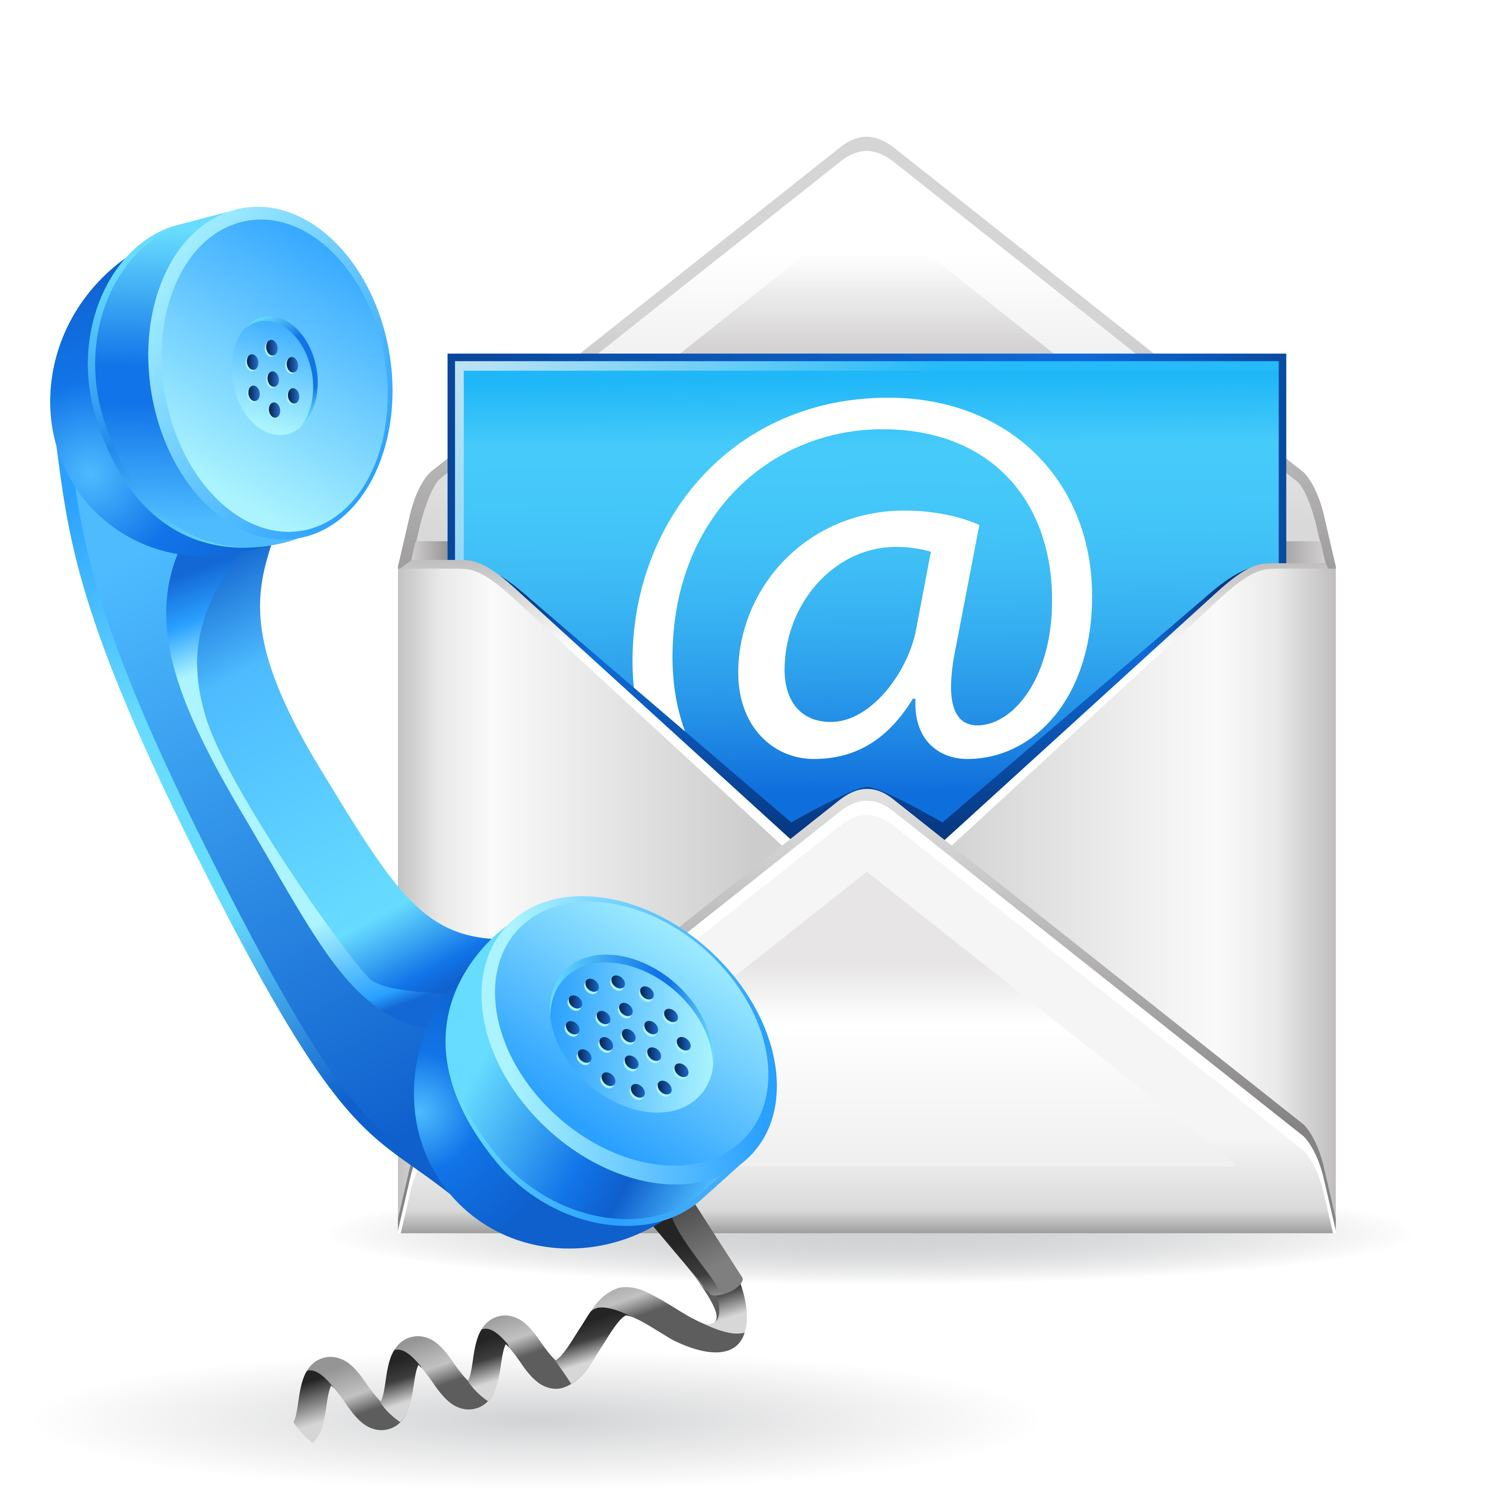 e-mail or contact us over phone.